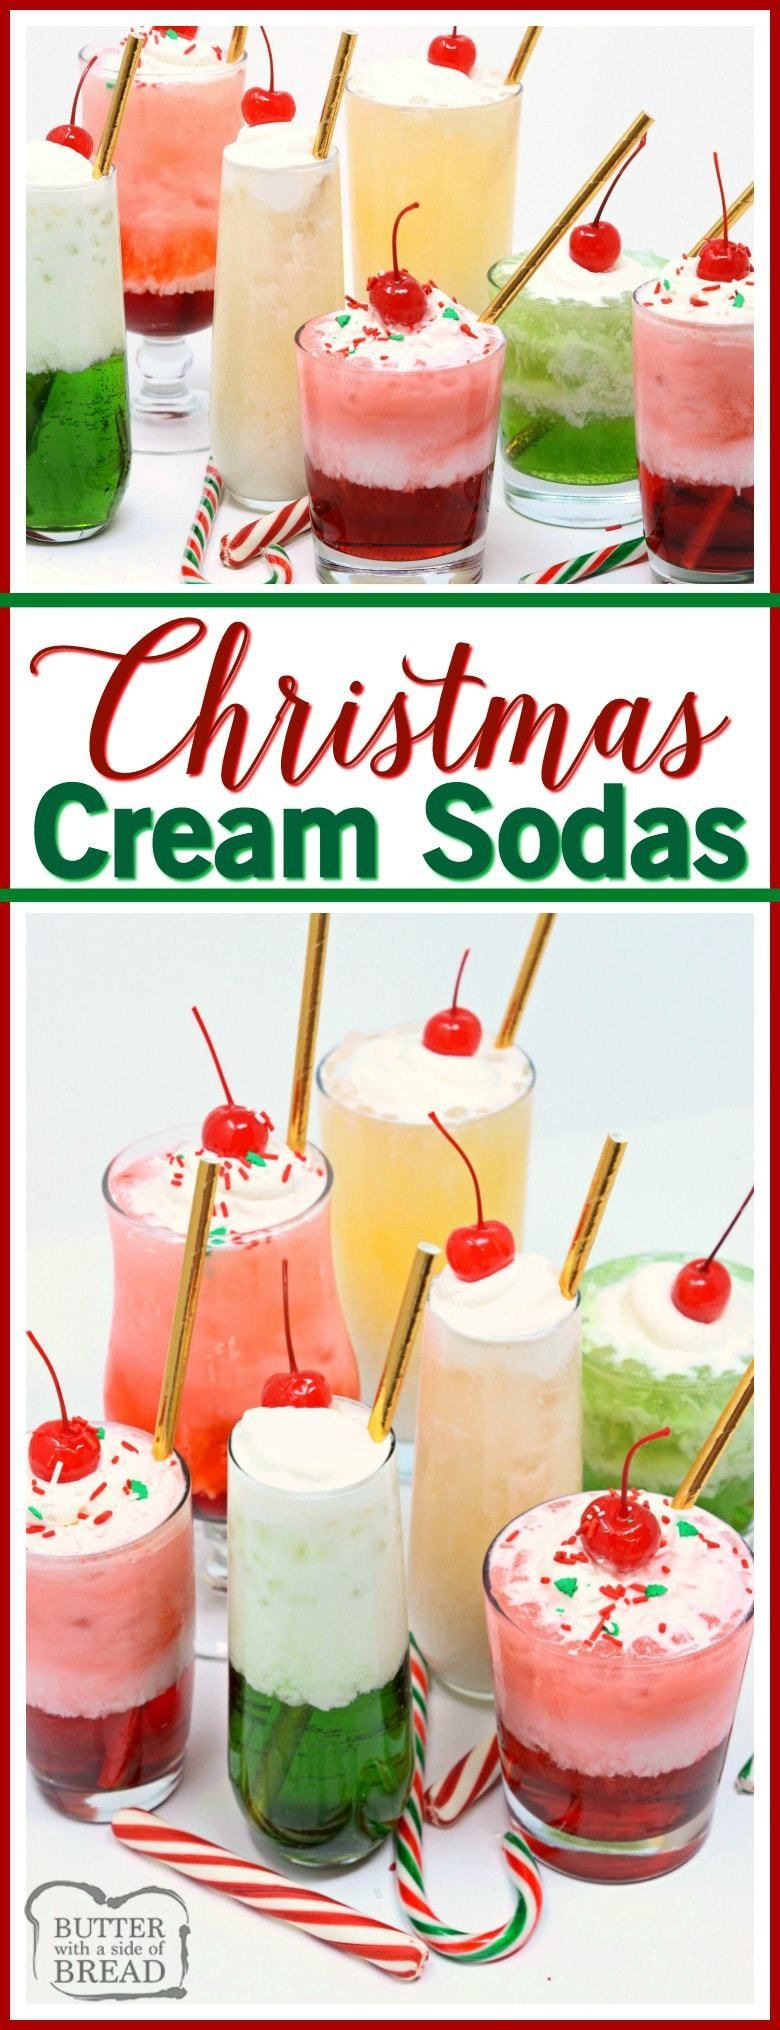 Christmas Cream Sodas made with sweet syrups, cream & club soda are a delicious & festive addition to any holiday party! Delicious mocktail that's so easy! Perfect #Christmas #drink #recipe from Butter With A Side of Bread #beverage #mocktail #holidays